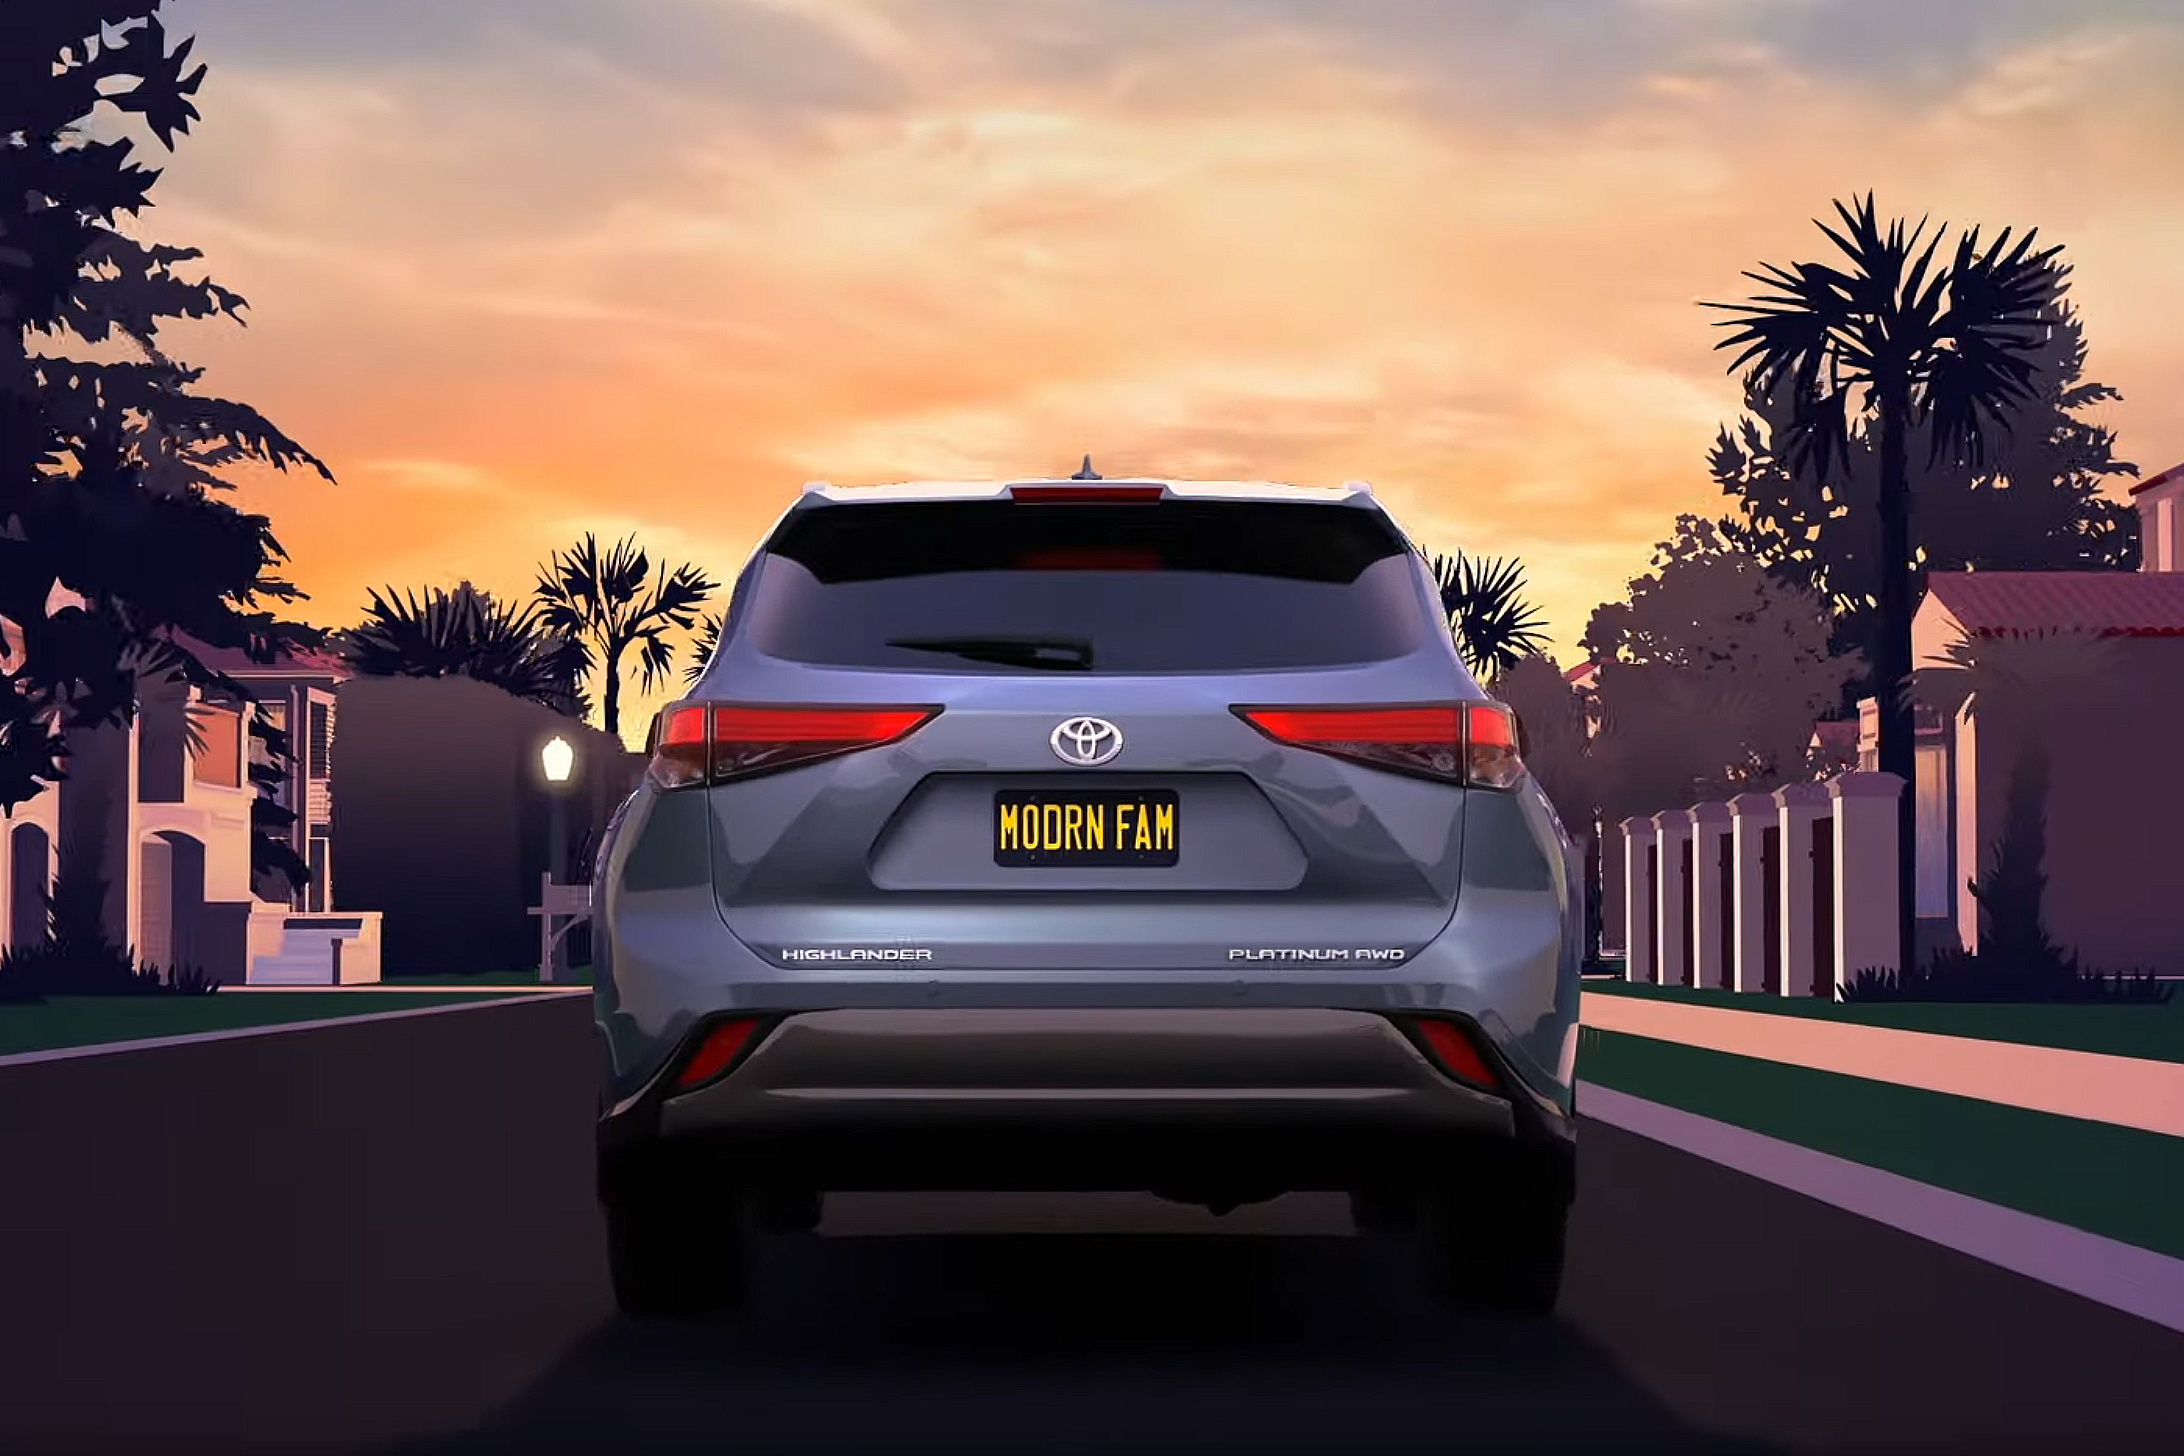 Watch Toyota's tribute ad to 'Modern Family' as the ABC series ends tonight